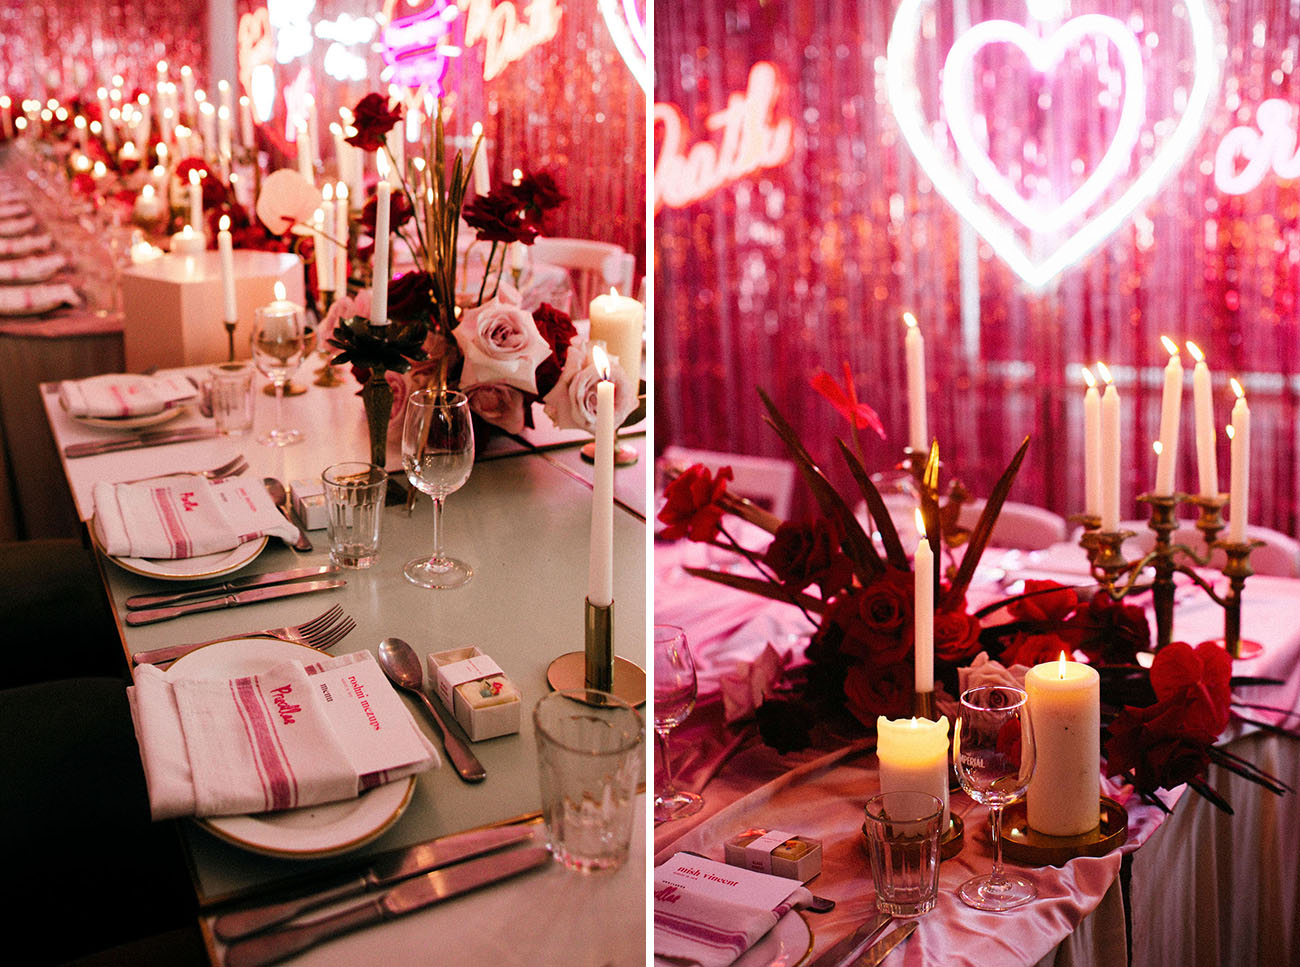 The place settings were done simple and modern plus candles in chic candle holders